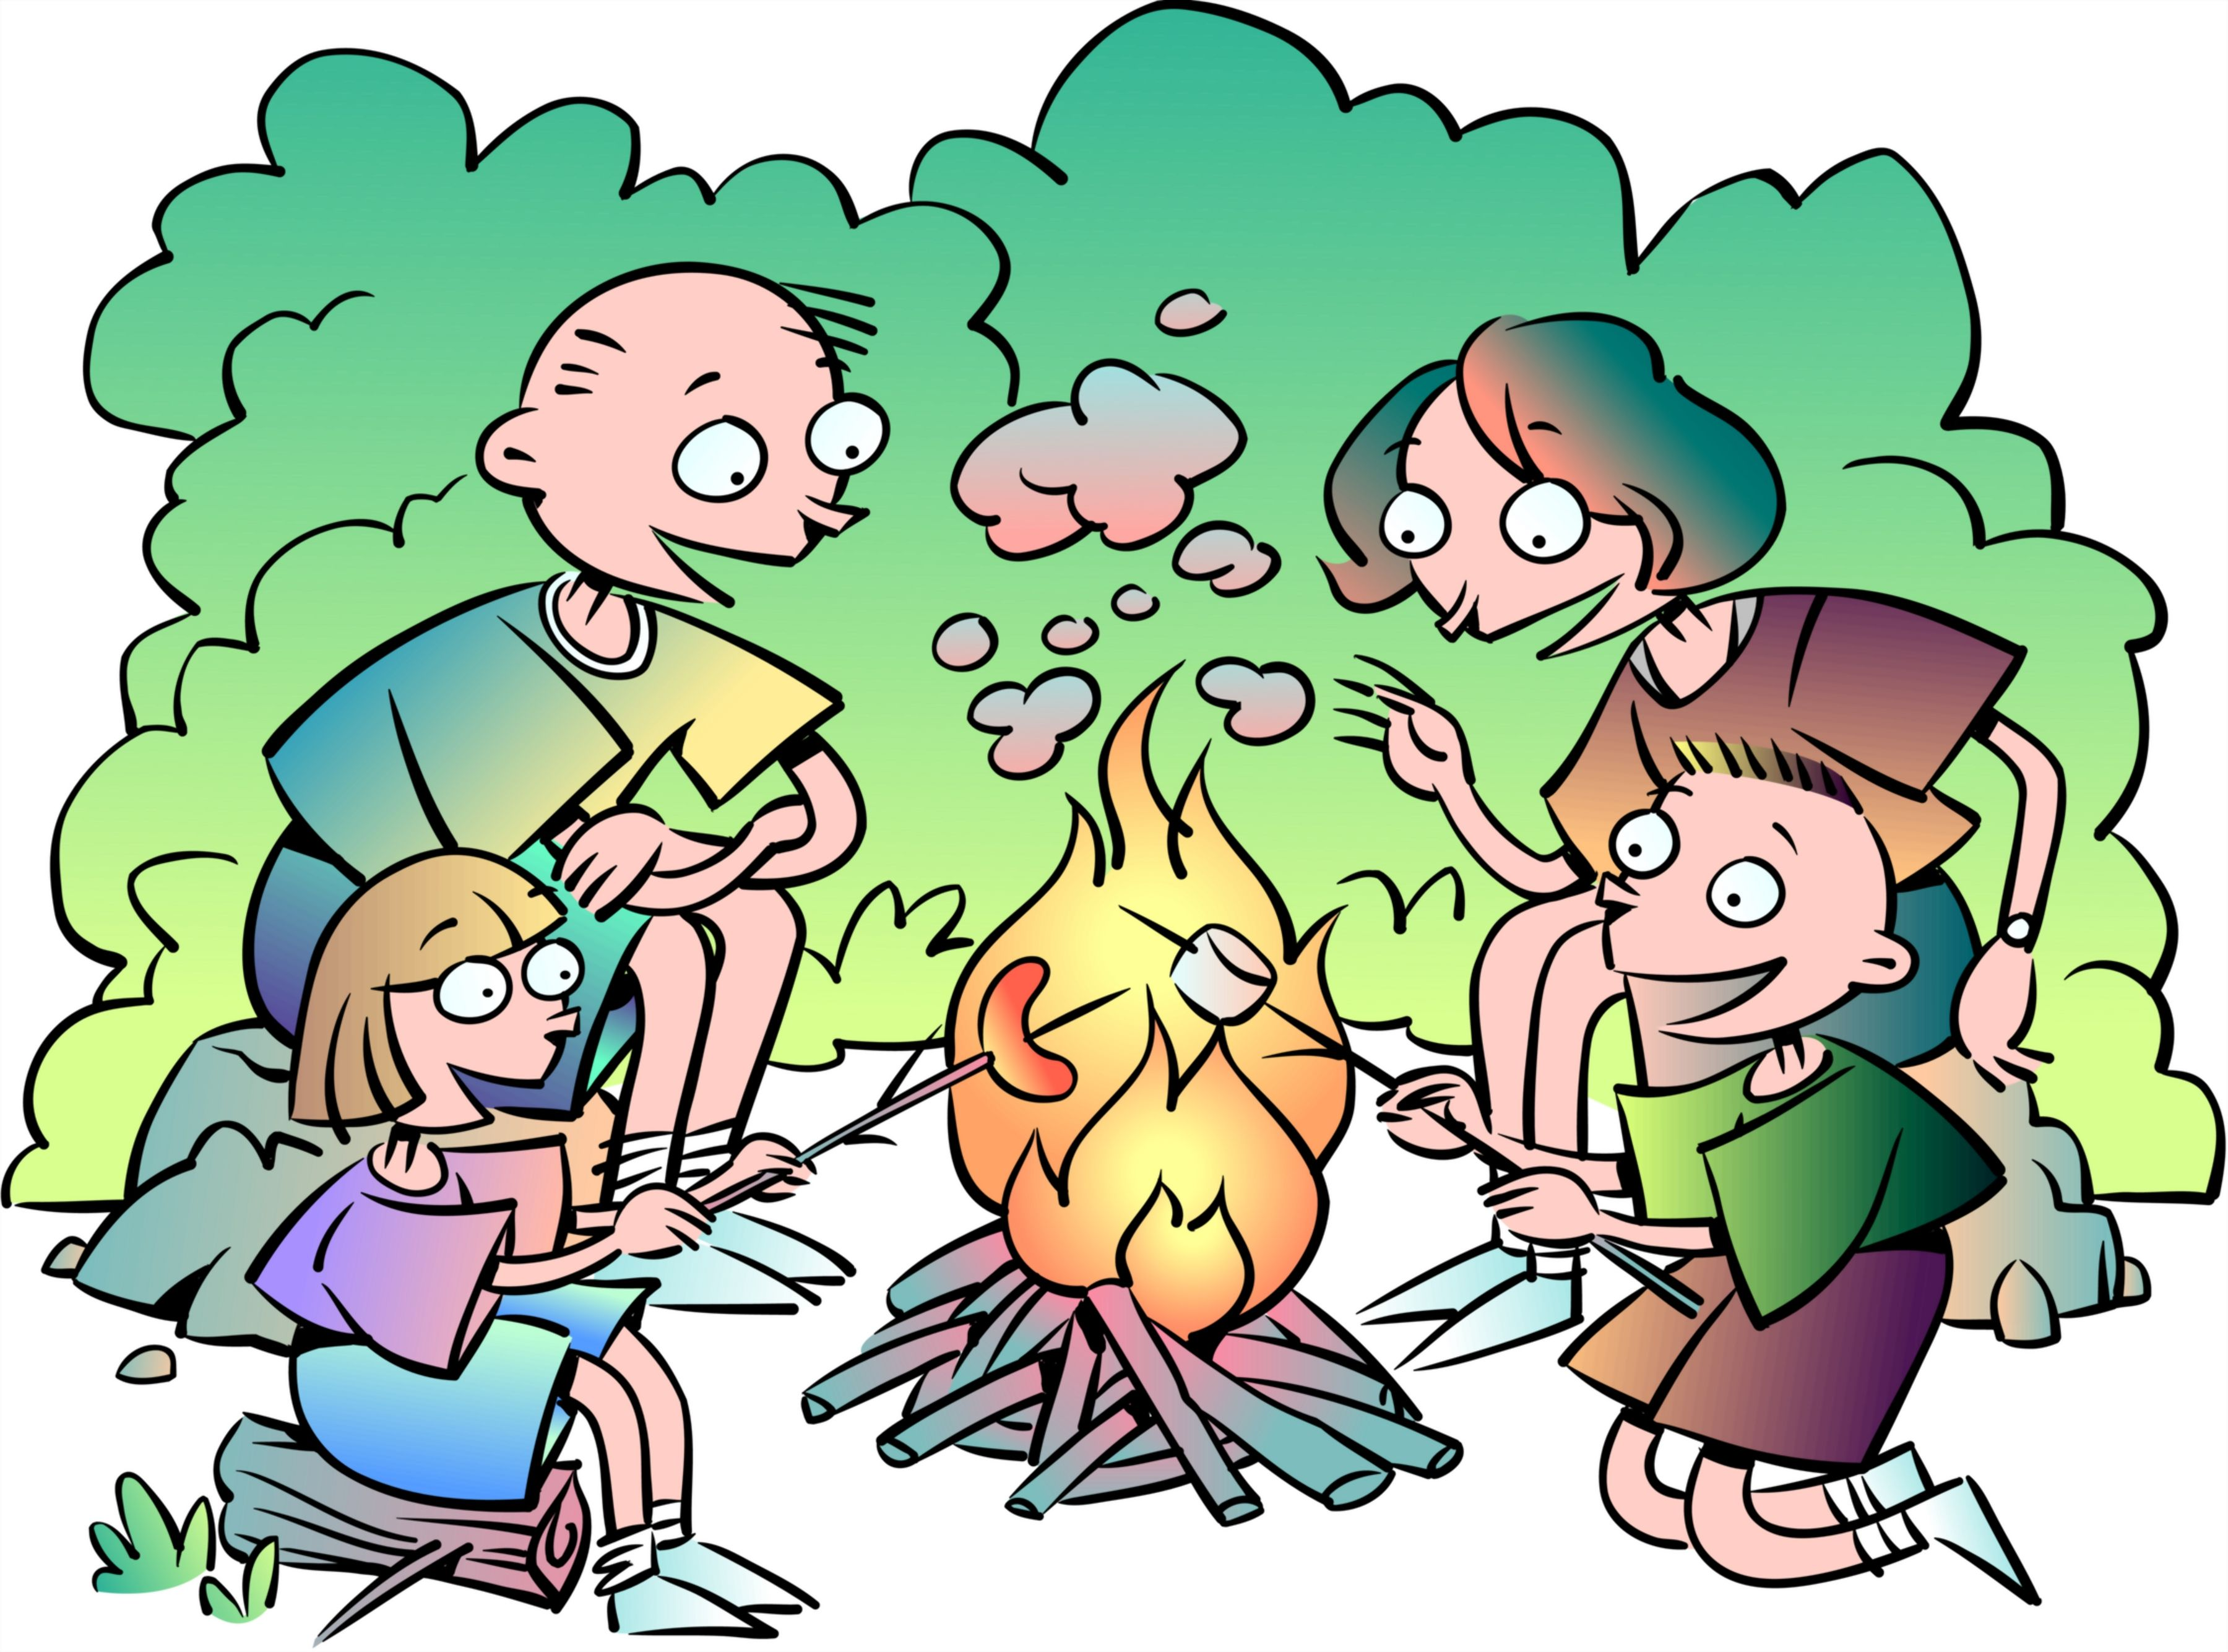 Family sitting in front of fire clipart banner transparent library Sitting By The Fire Clipart - Free Clipart banner transparent library